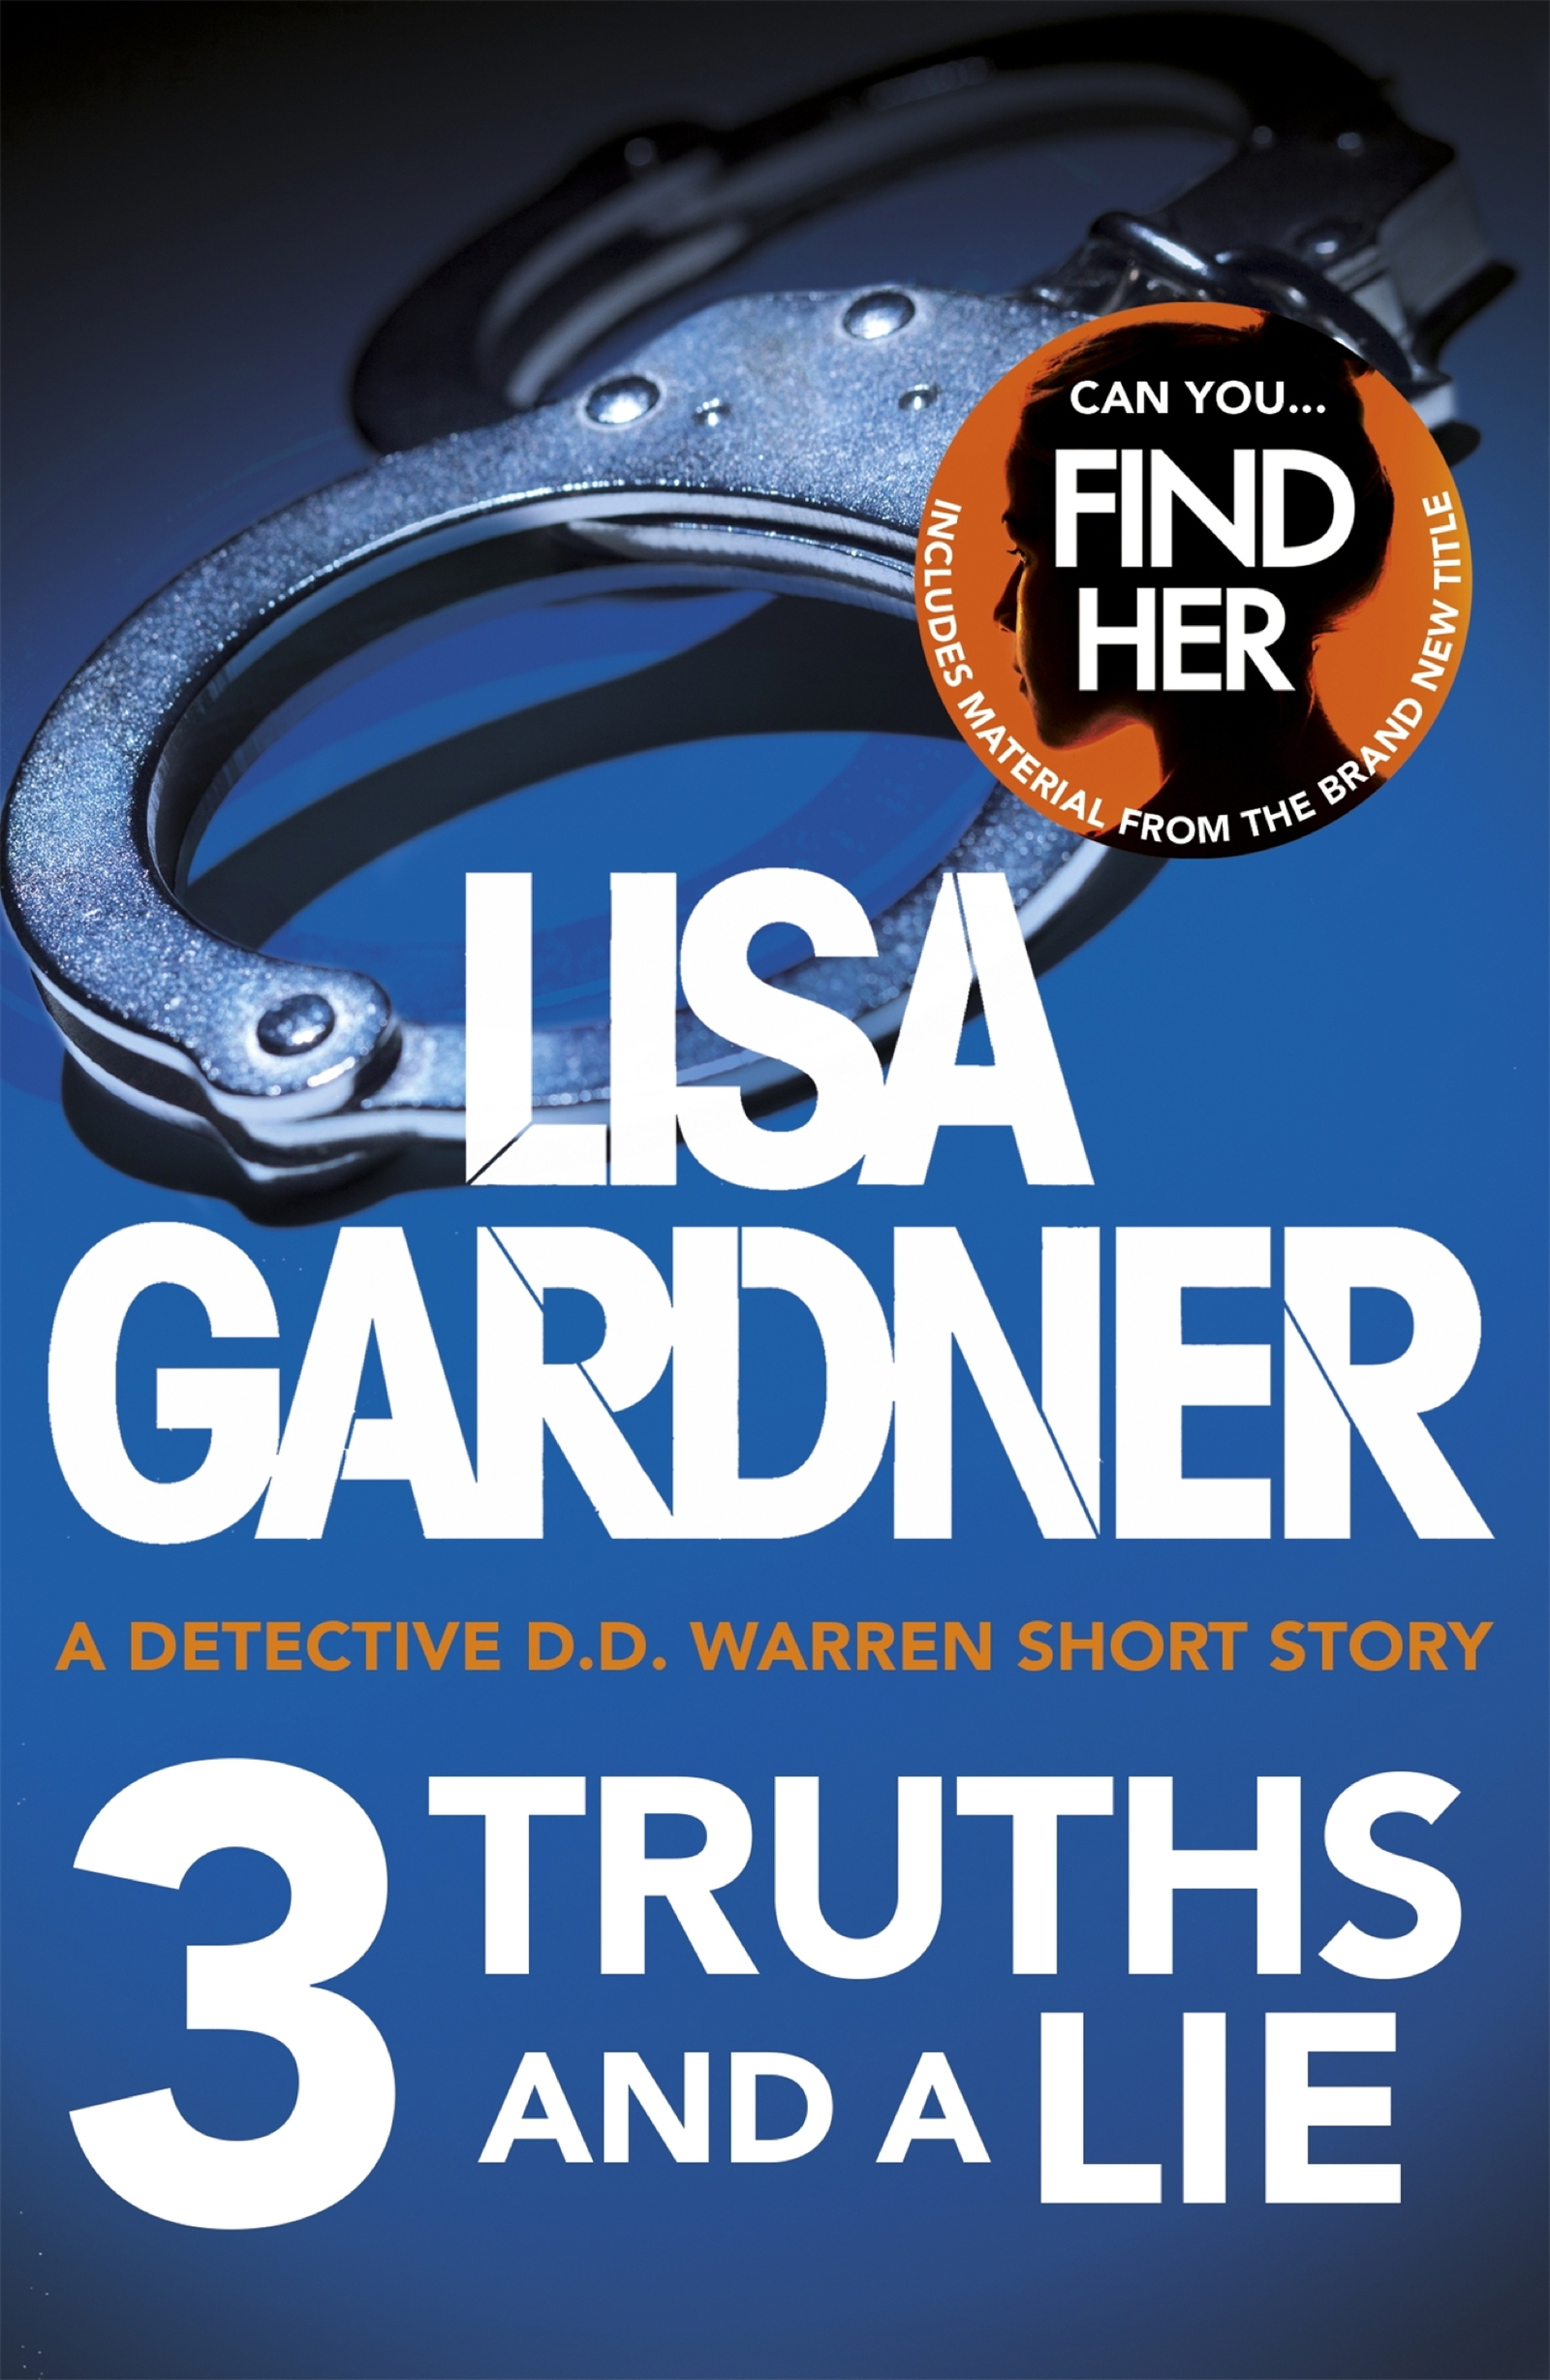 3 Truths and a Lie (A Detective D.D. Warren Short Story)